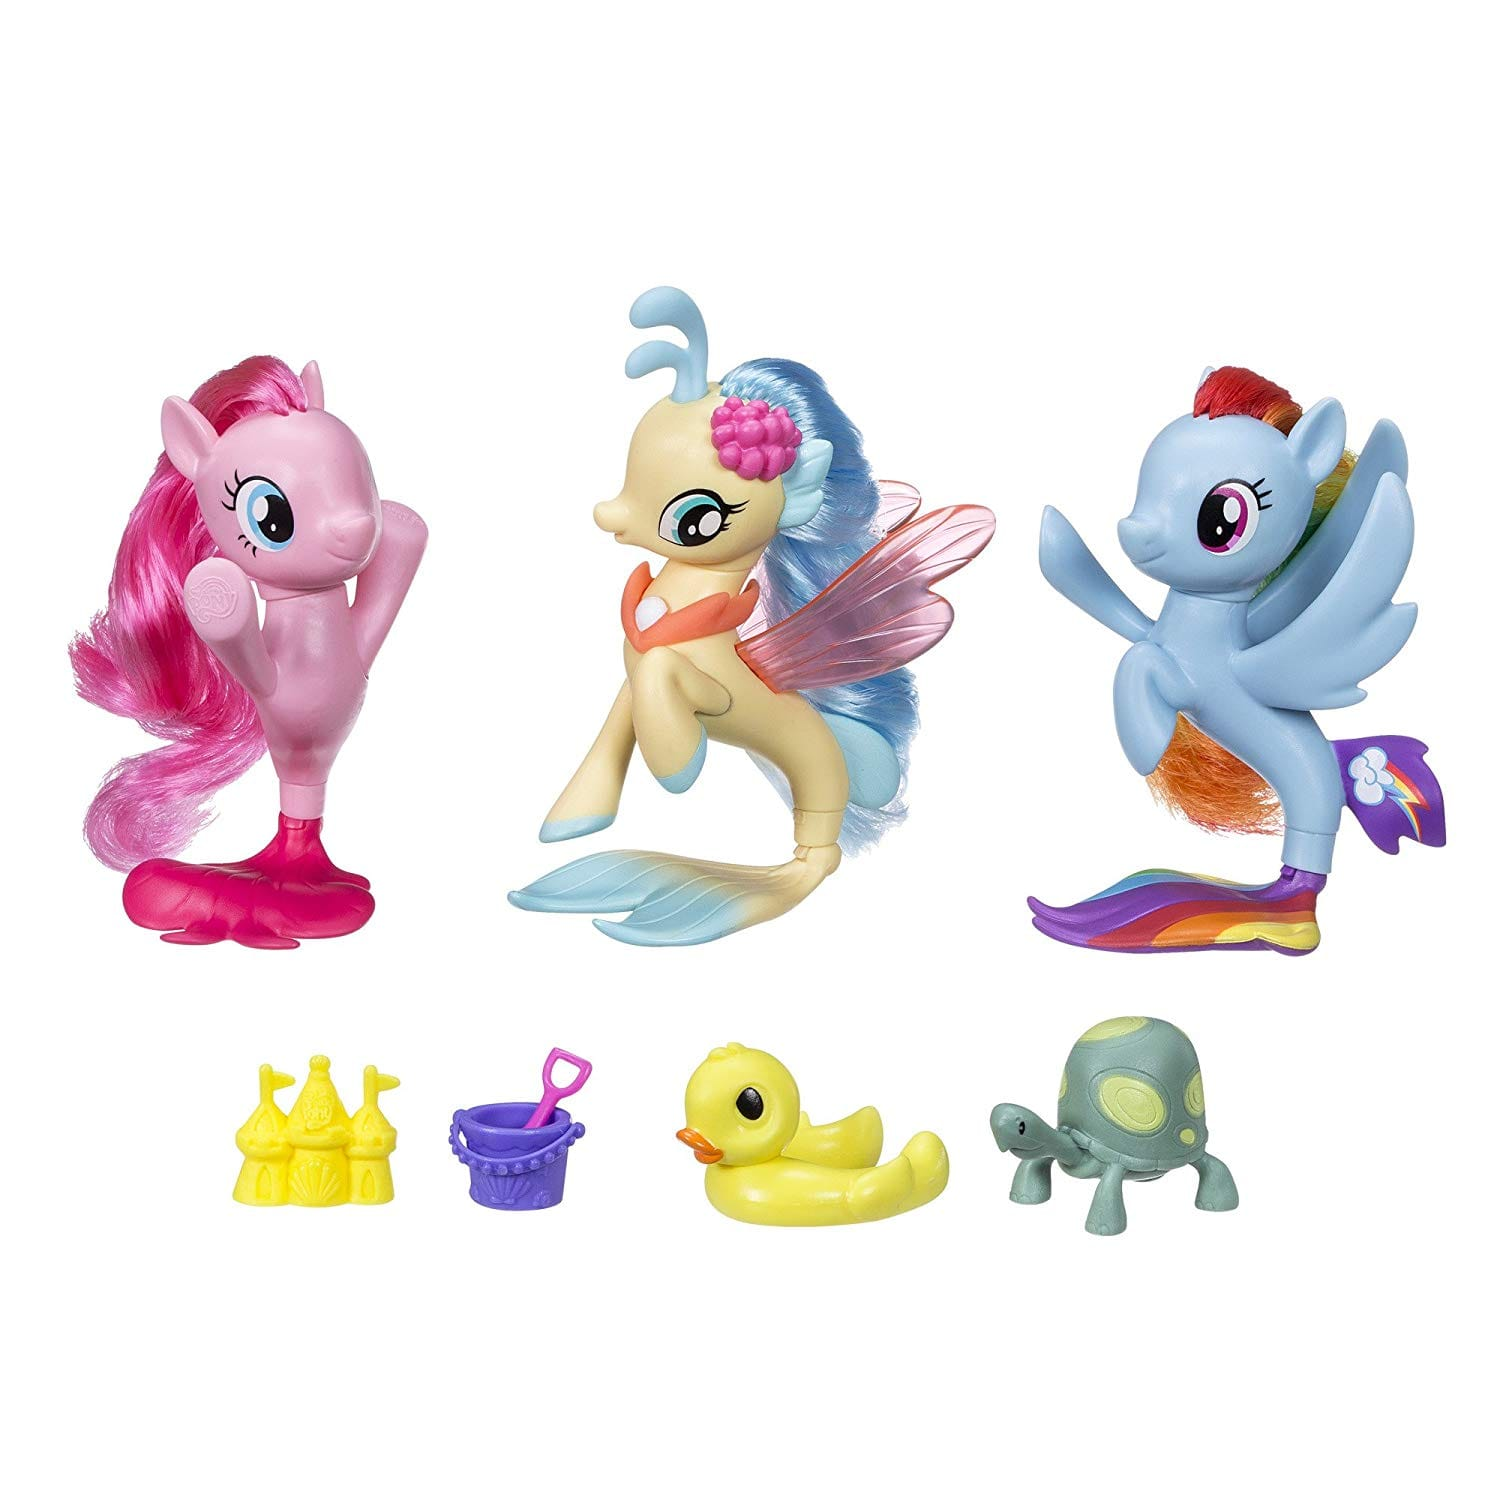 3-Pack My Little Pony the Movie Seapony Collection $10 at Amazon